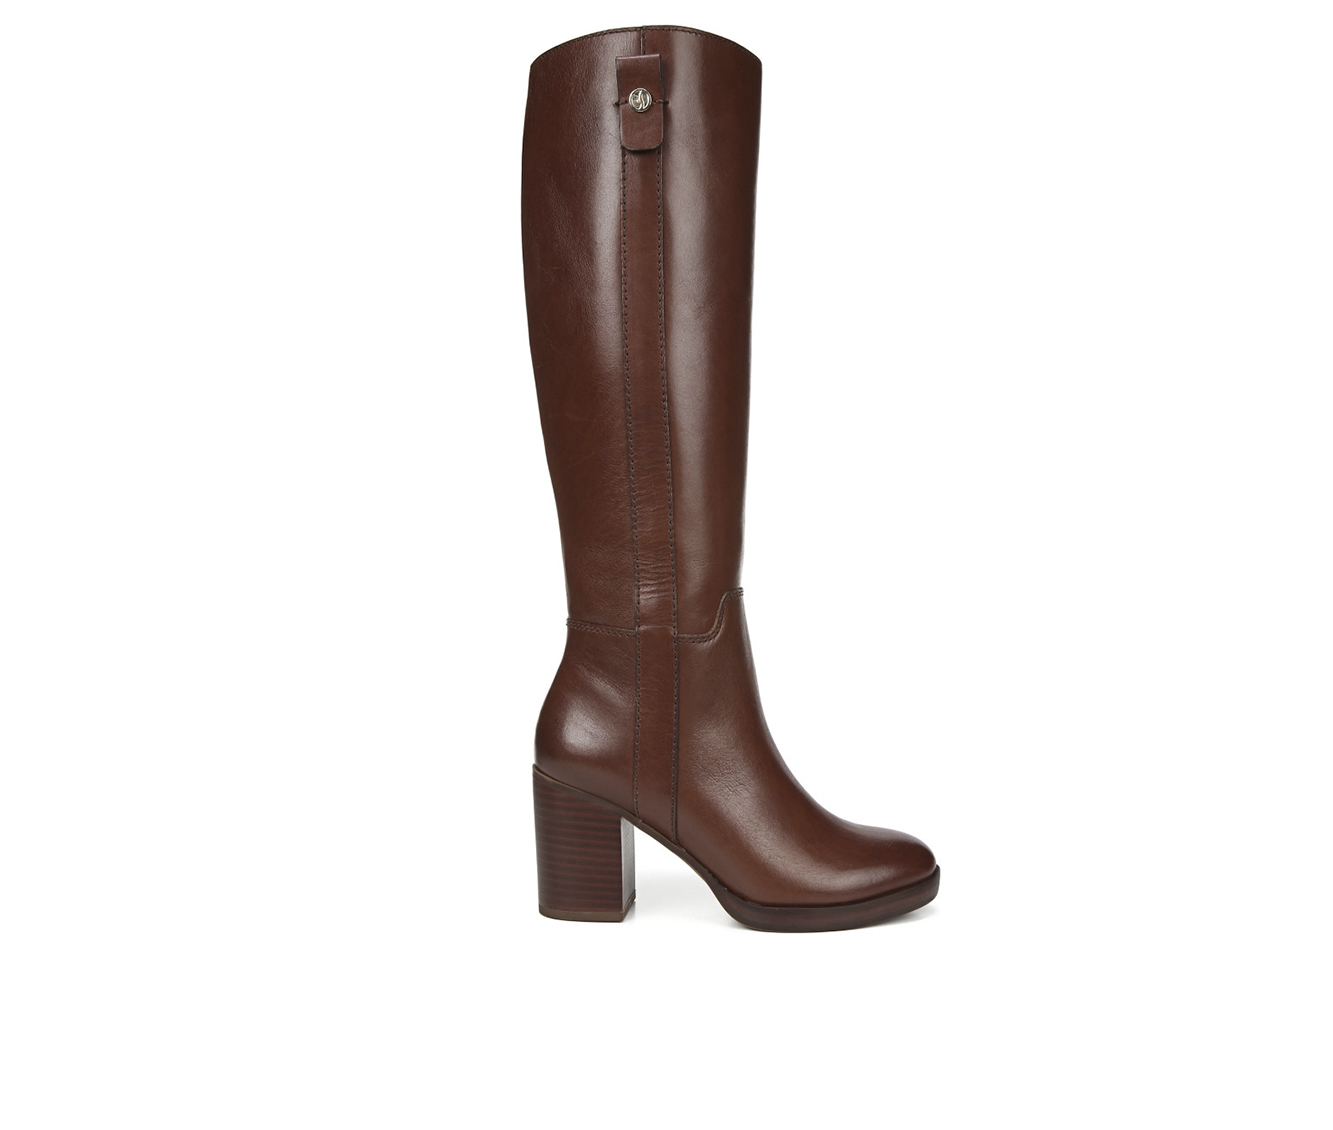 Franco Sarto Kendra Women's Boots (Brown - Leather)